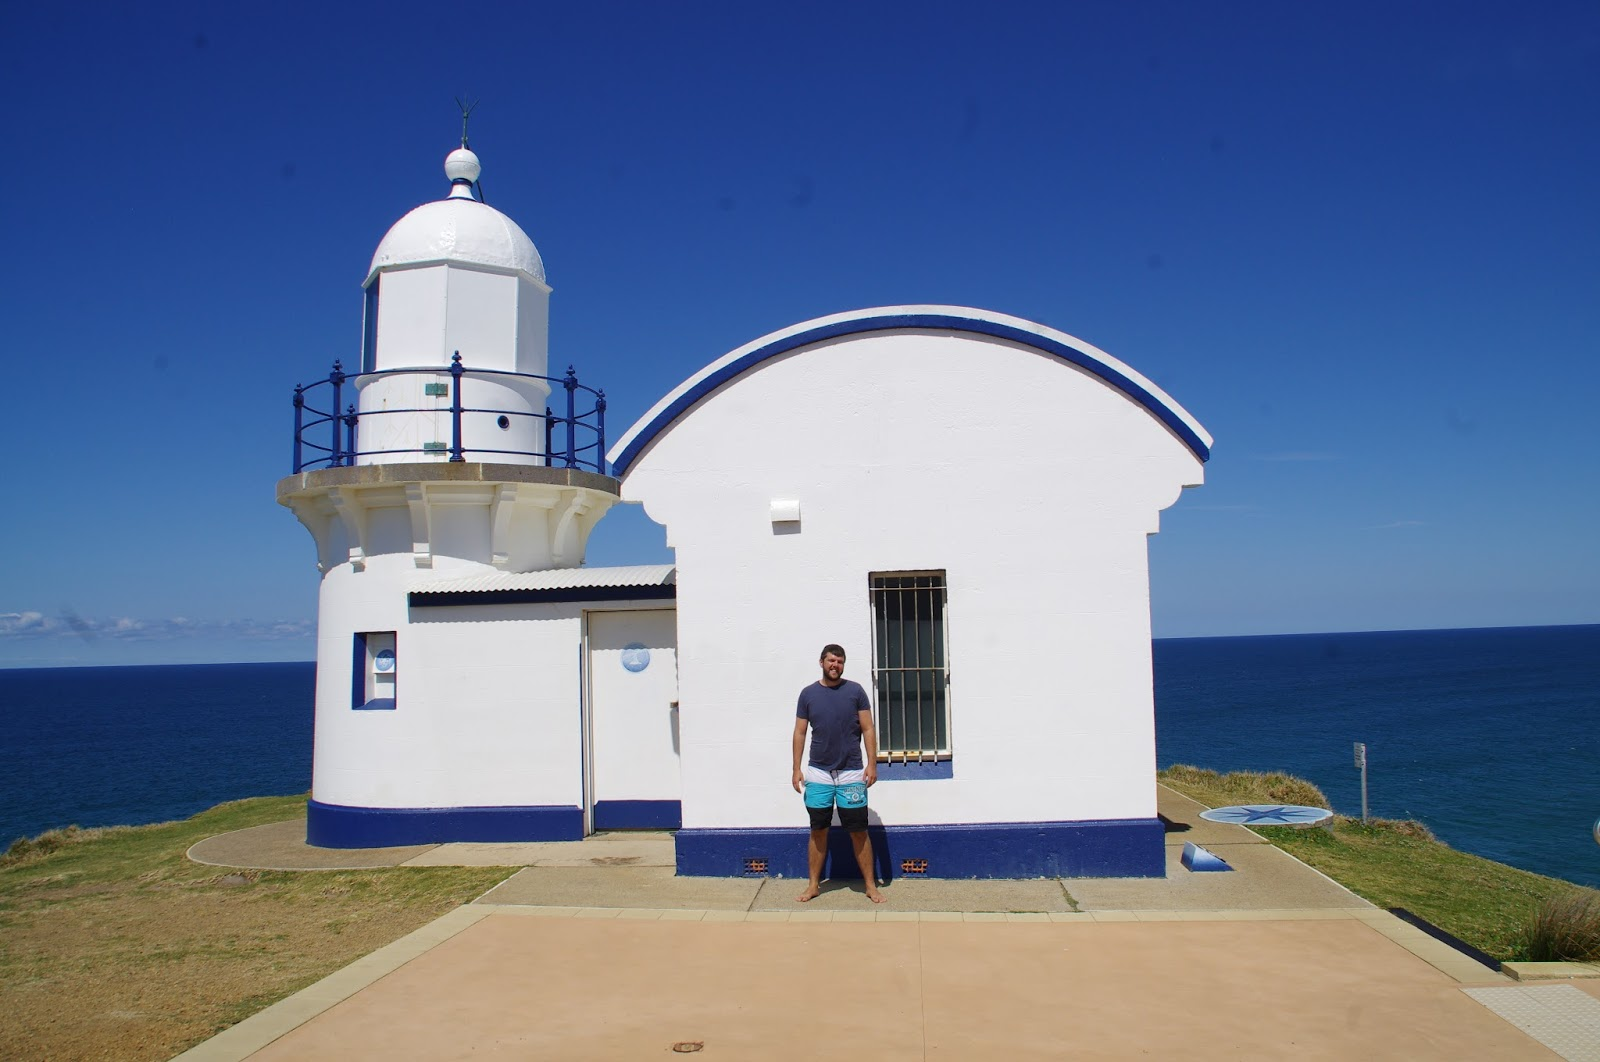 Tacking Point Lighthouse Port Macquarie